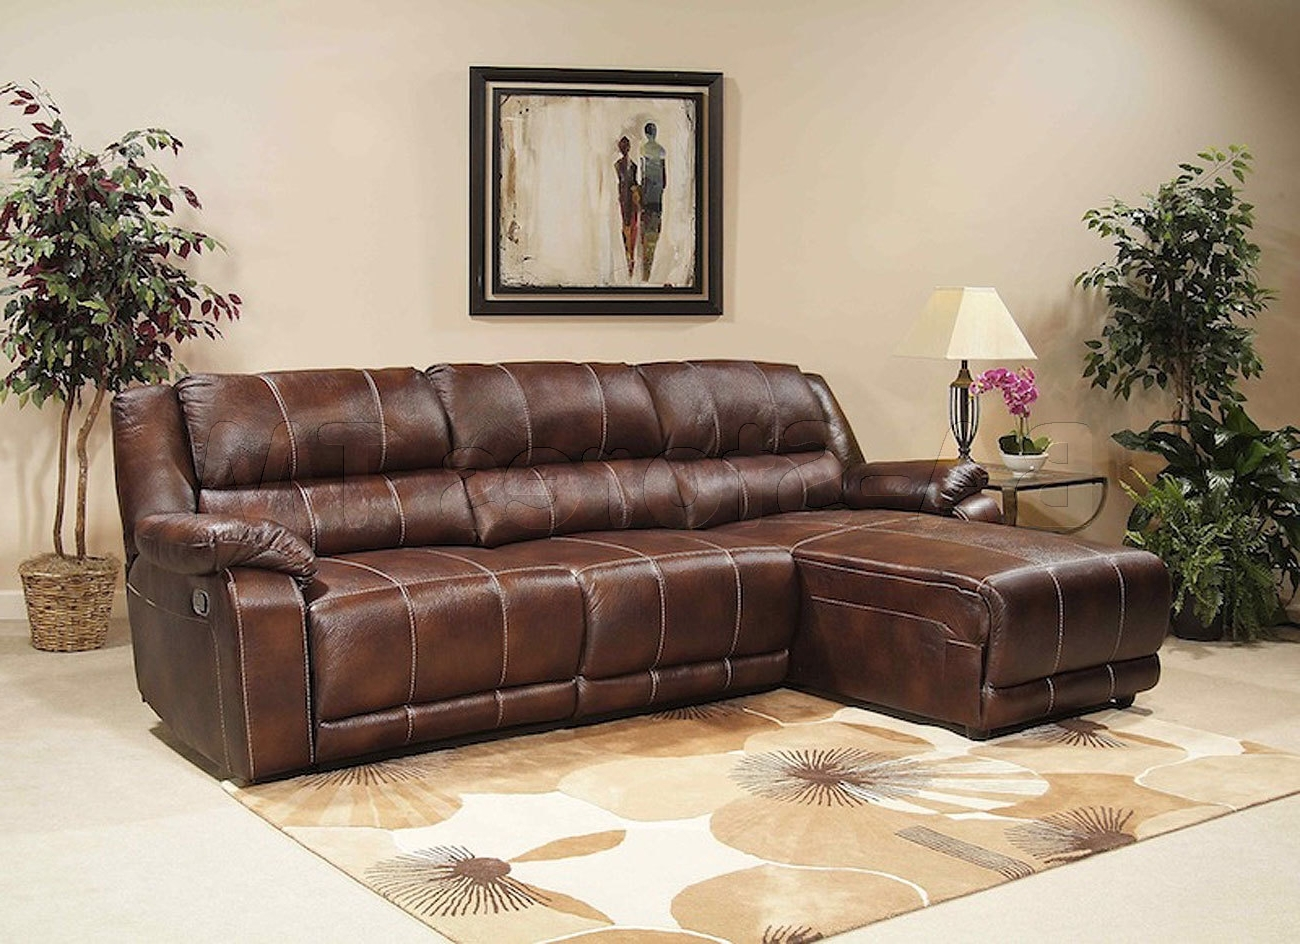 Leather Sectionals With Chaise And Recliner Within 2018 An Overview Of Sectional Sofas With Recliner – Elites Home Decor (View 6 of 15)